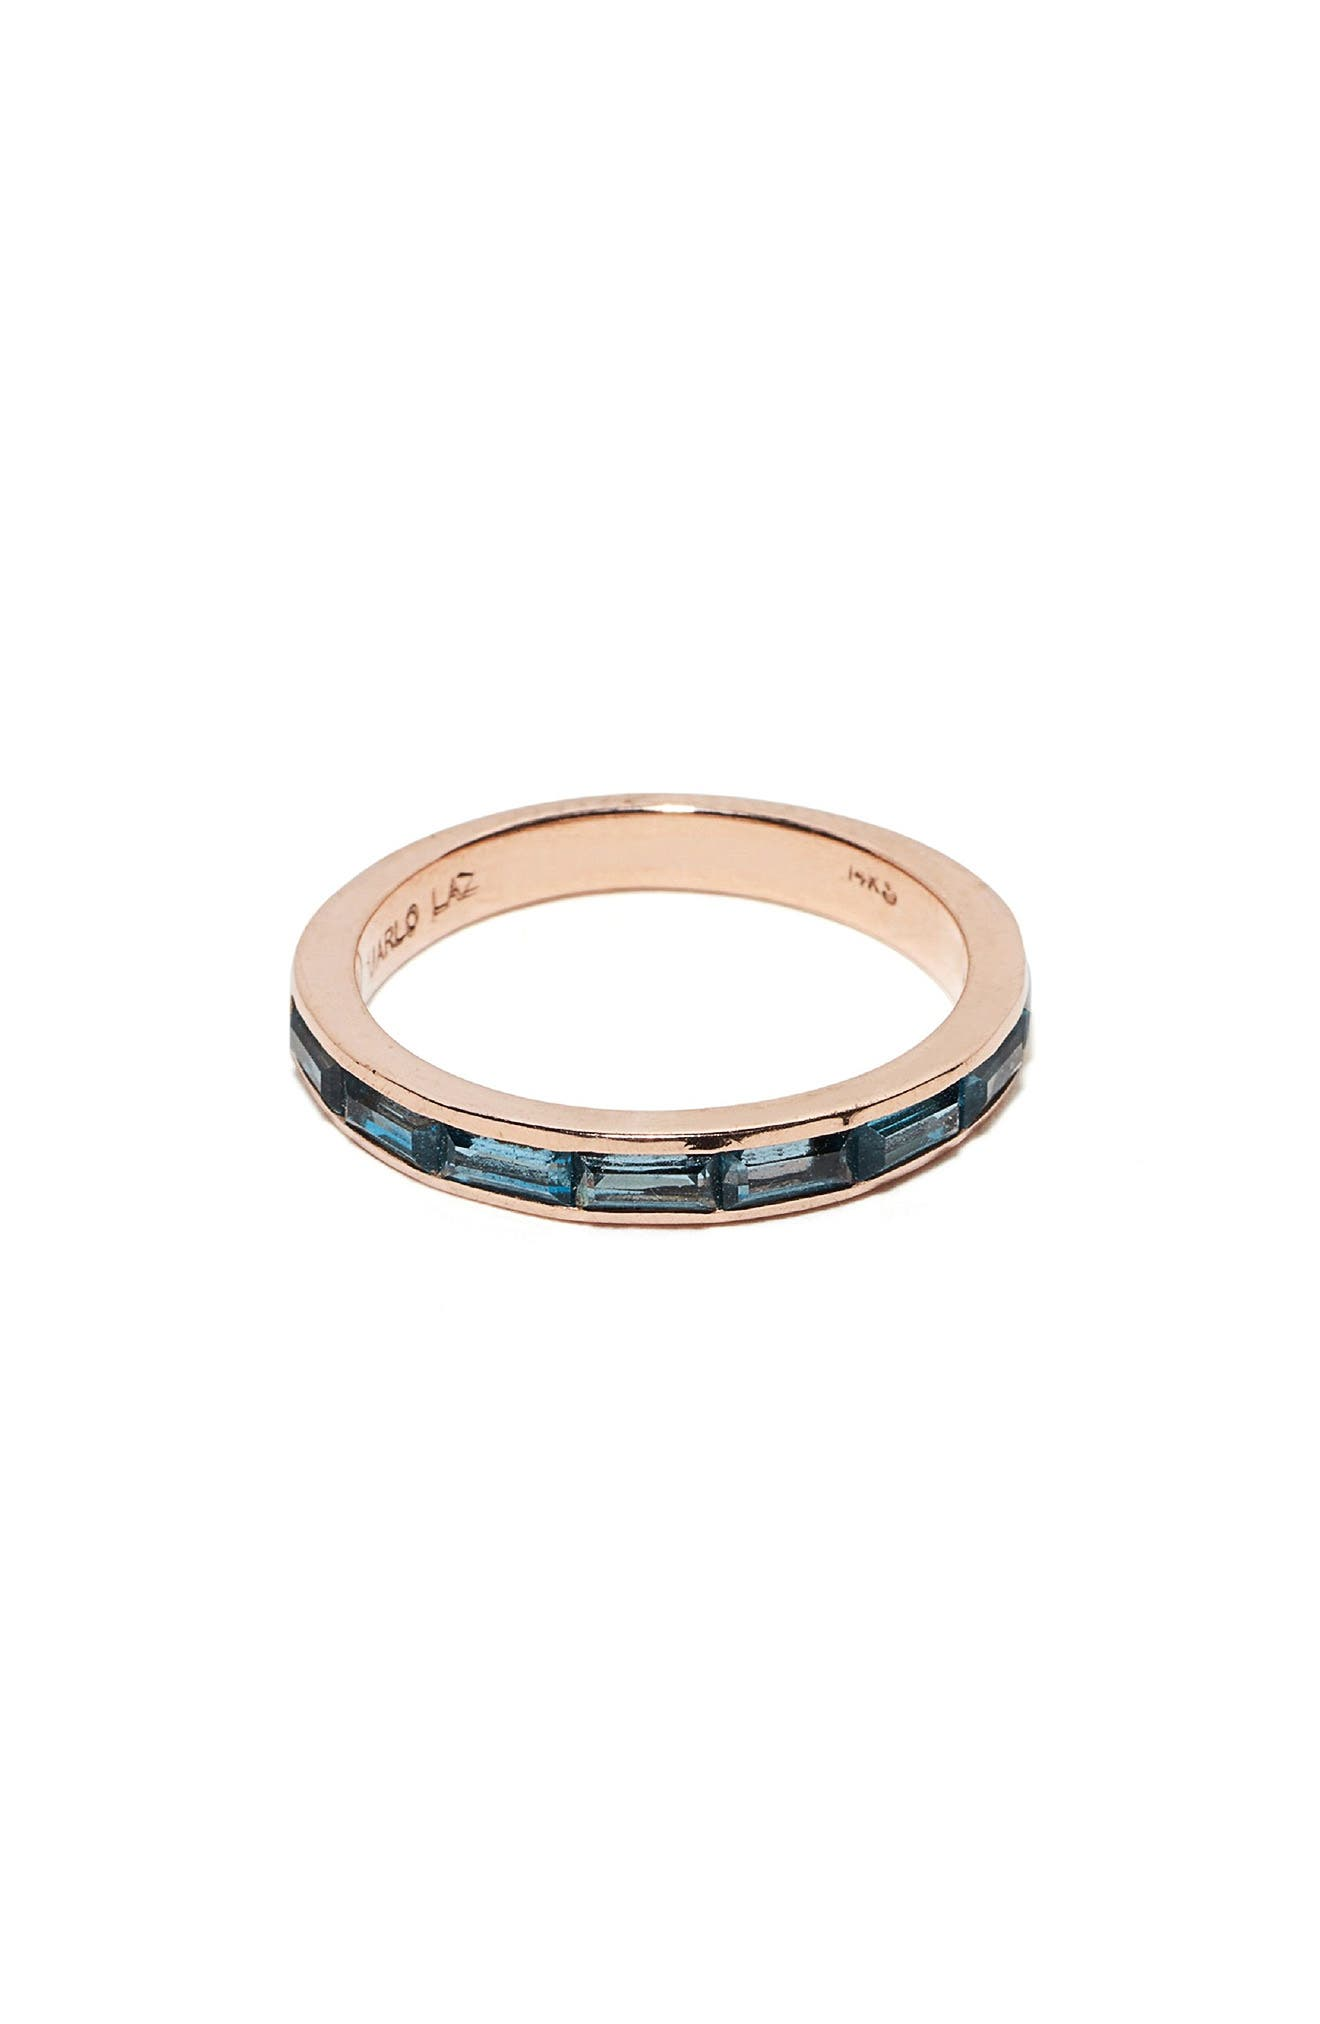 Blue Topaz Baguette Ring,                         Main,                         color, Rose Gold